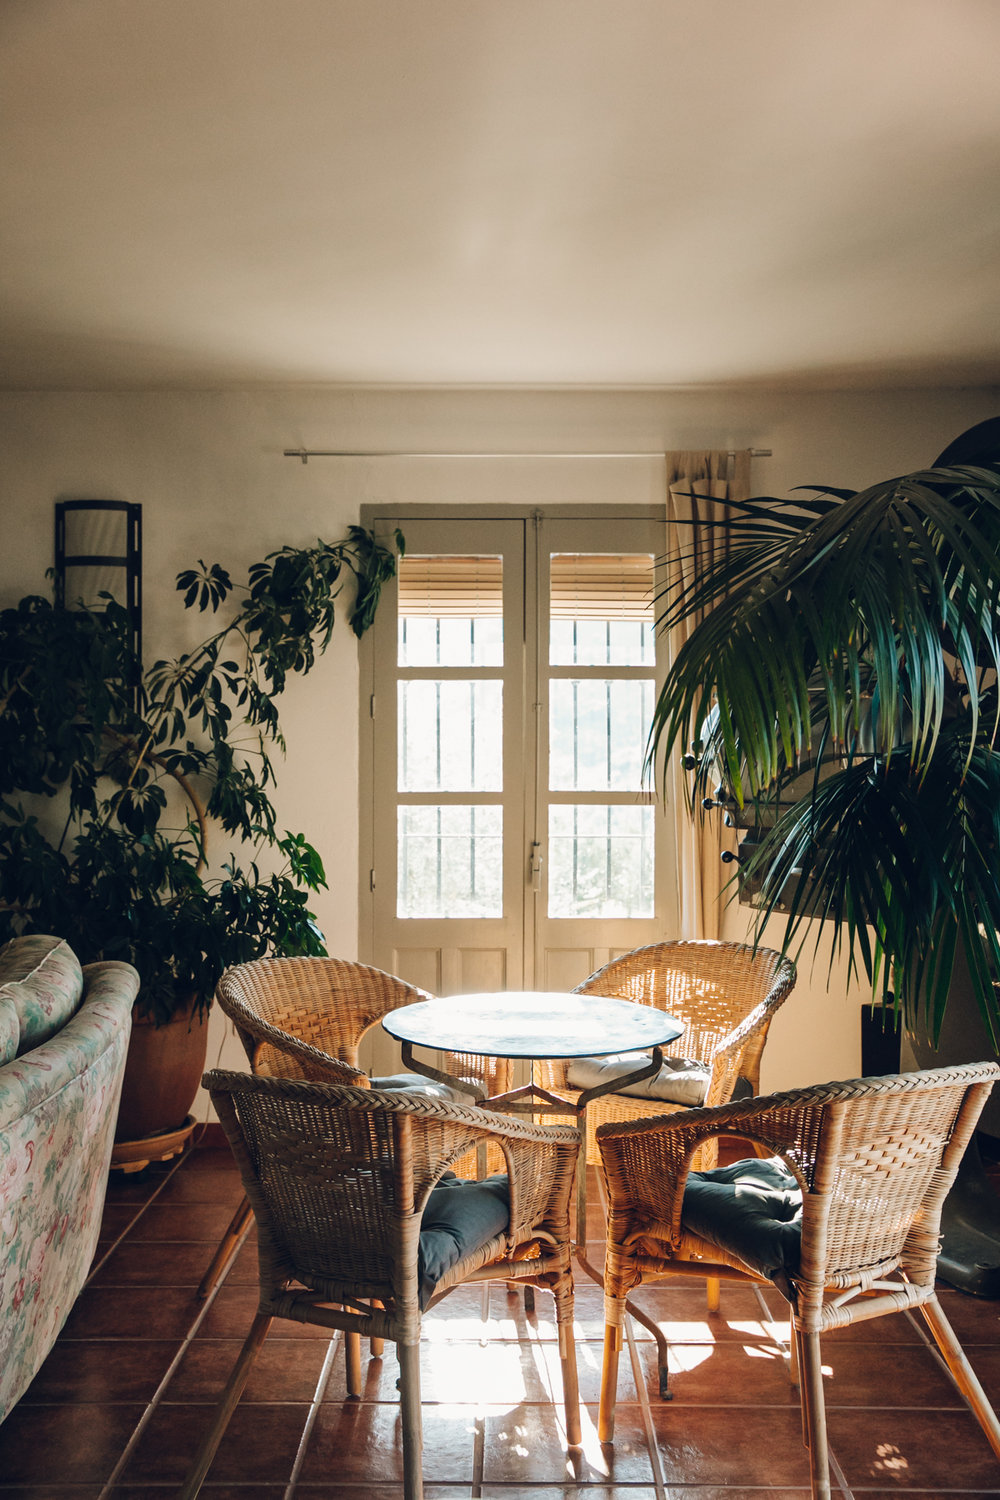 Spanish interior details - with houseplants.